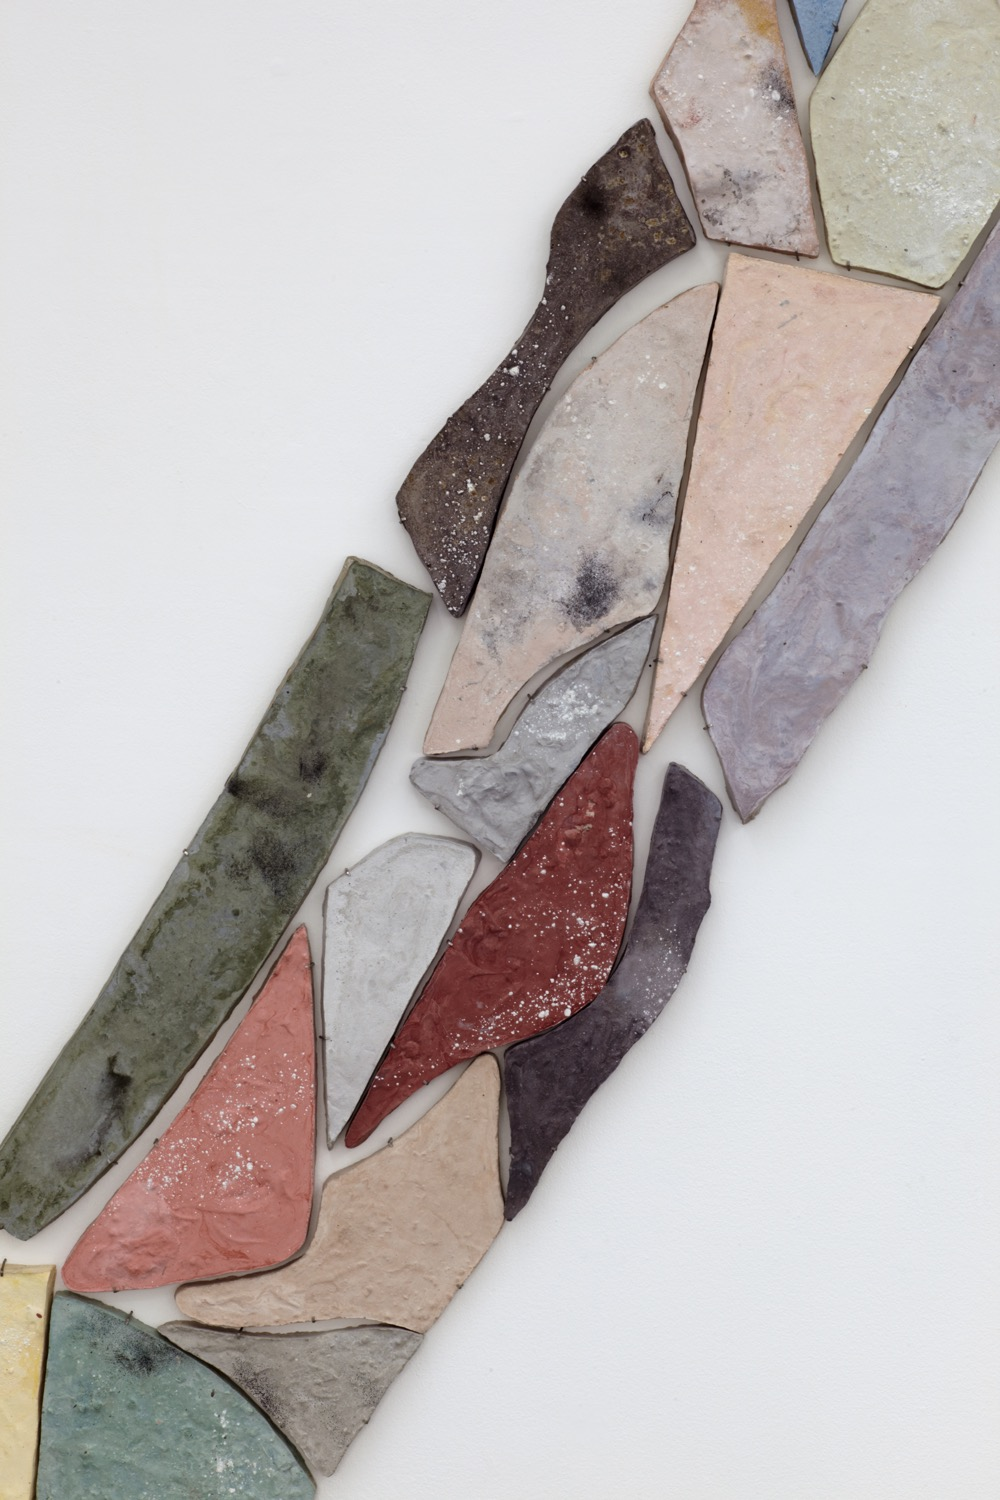 Karin Ruggaber, Relief #117, 2013 (detail)